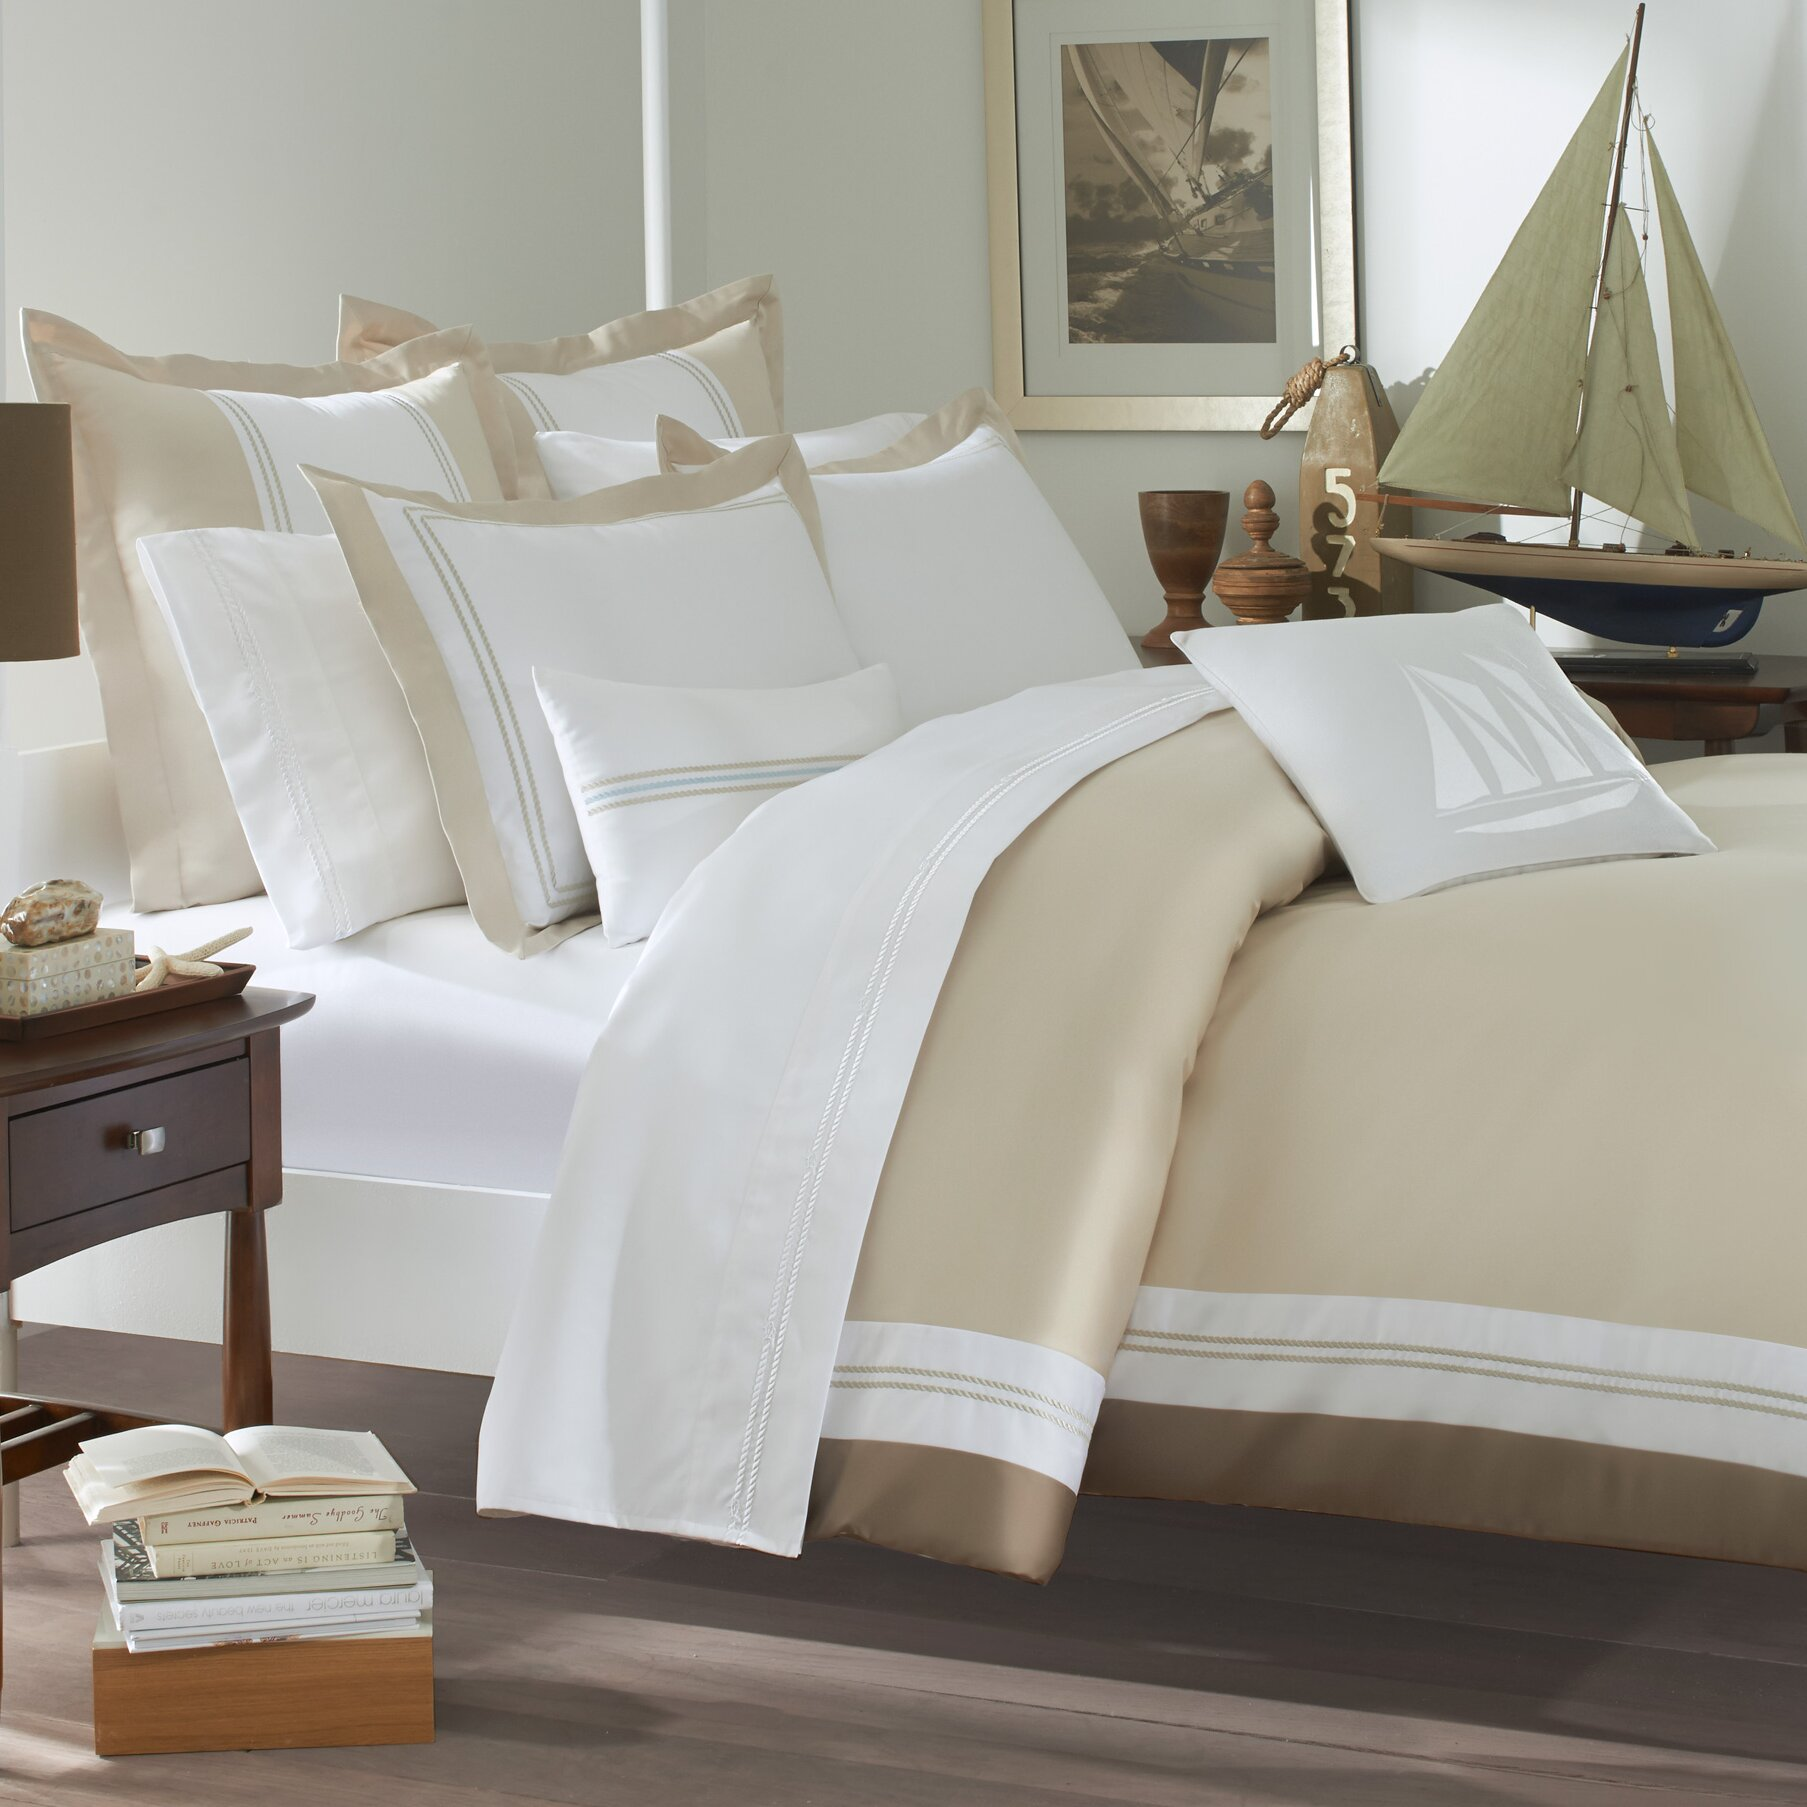 Southern tide maritime duvet cover collection reviews for Southern tide bedding